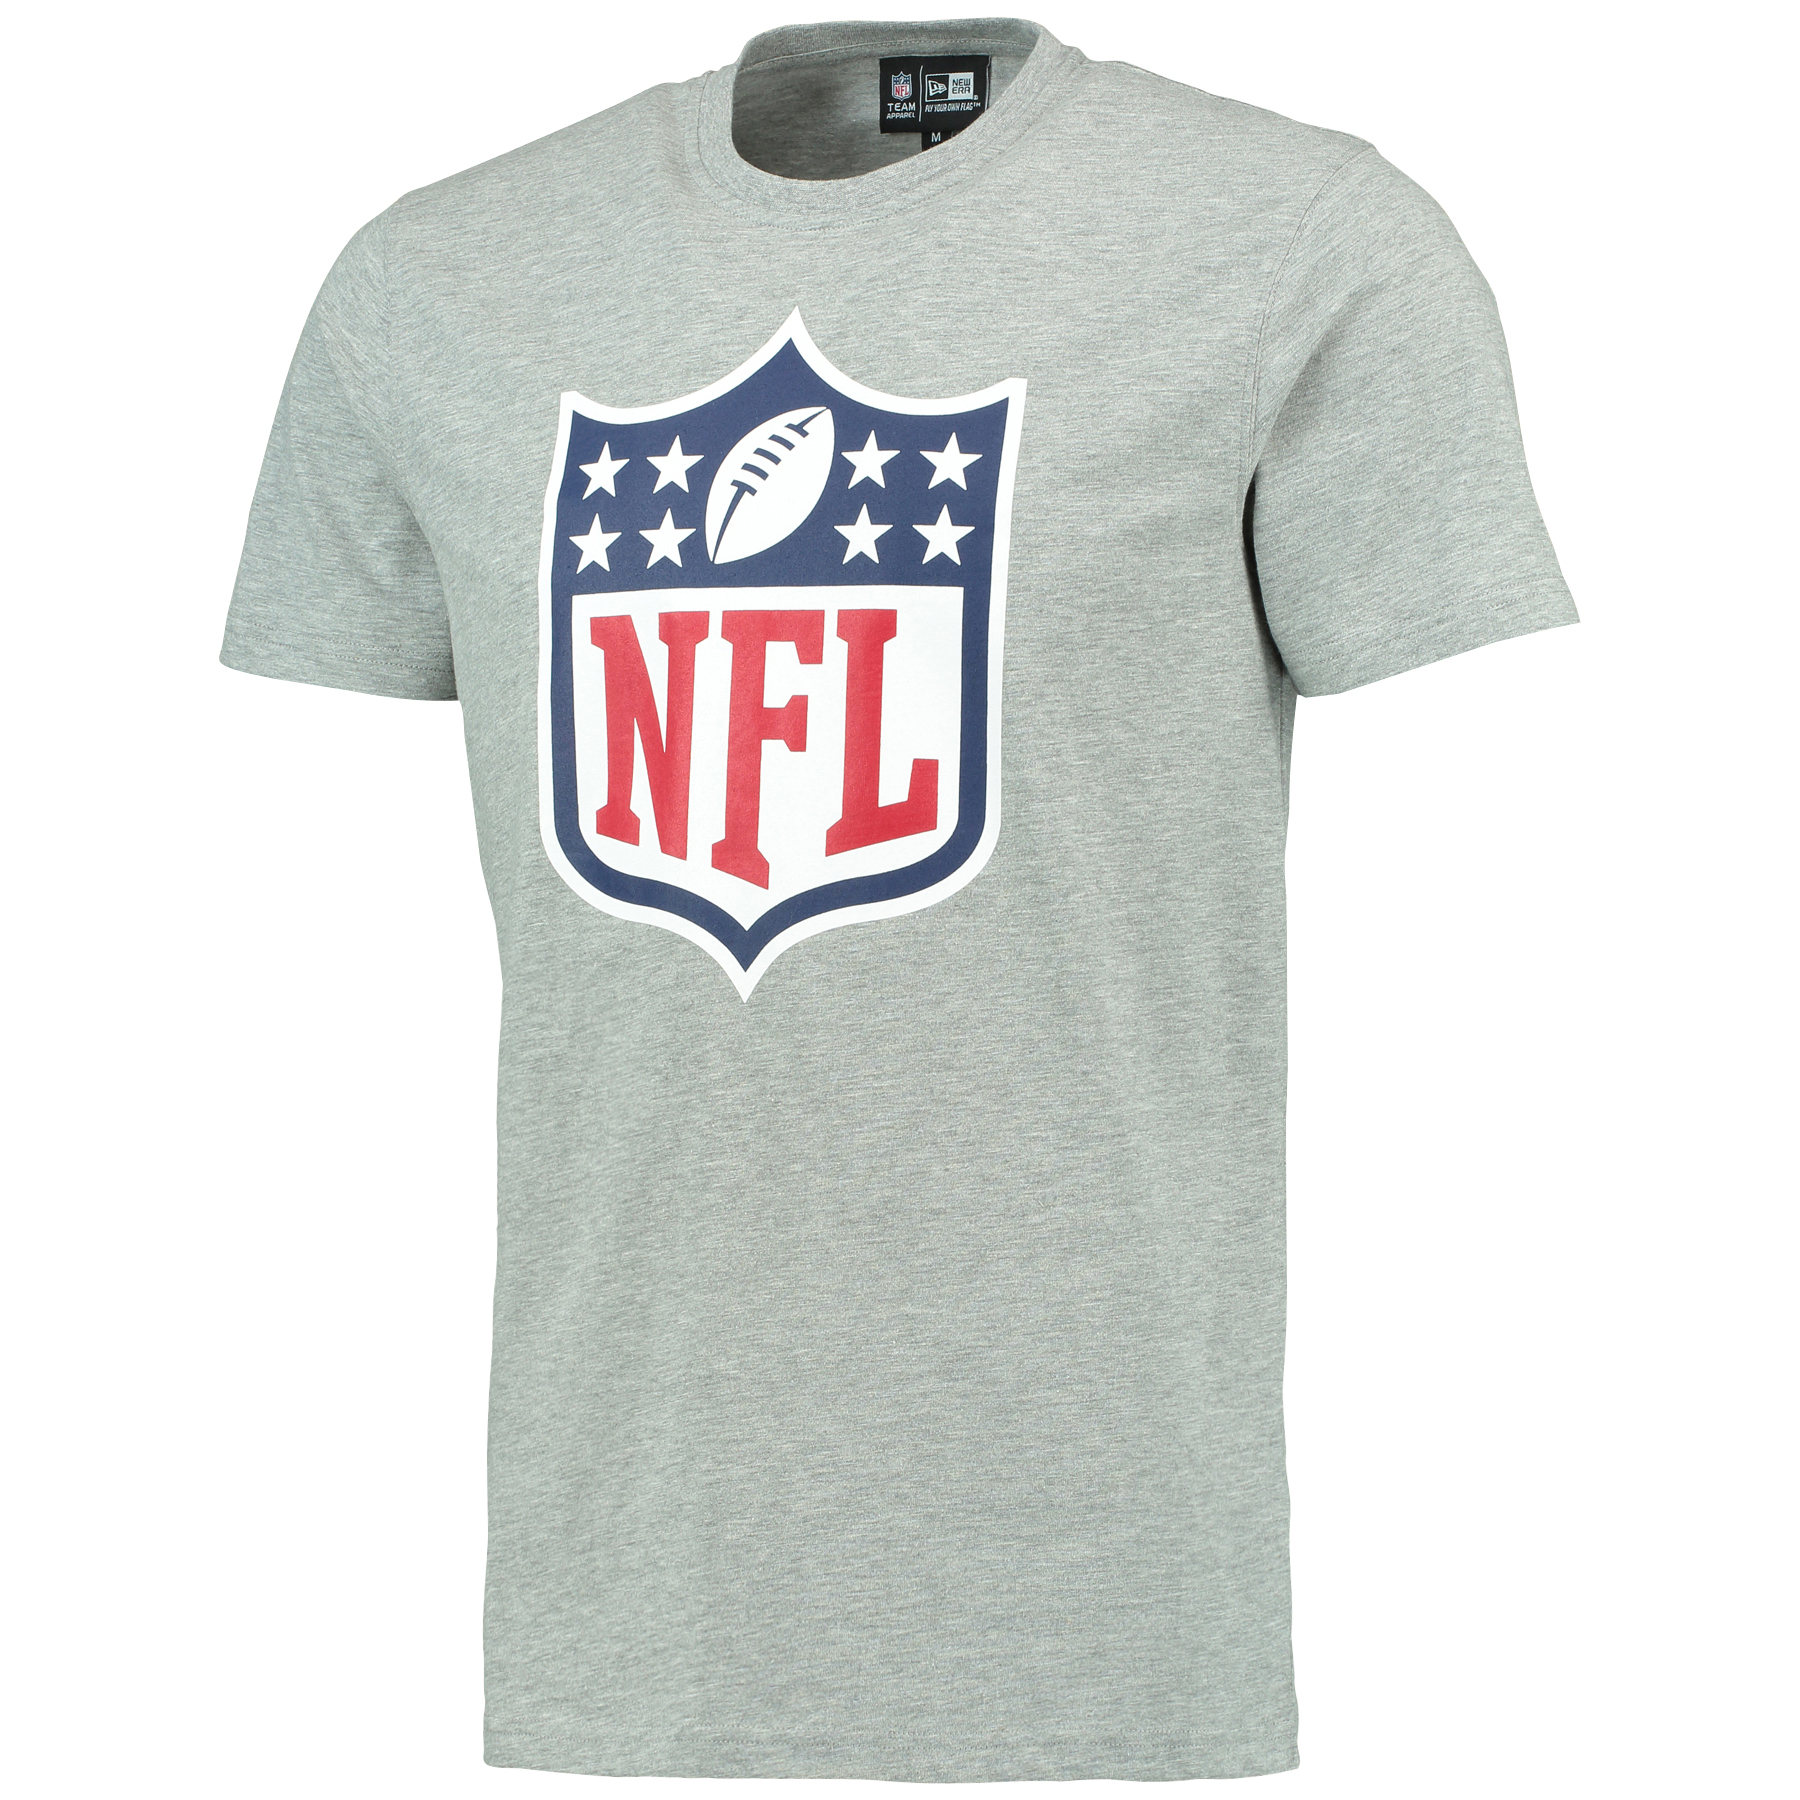 NFL New Era Logo T-Shirt